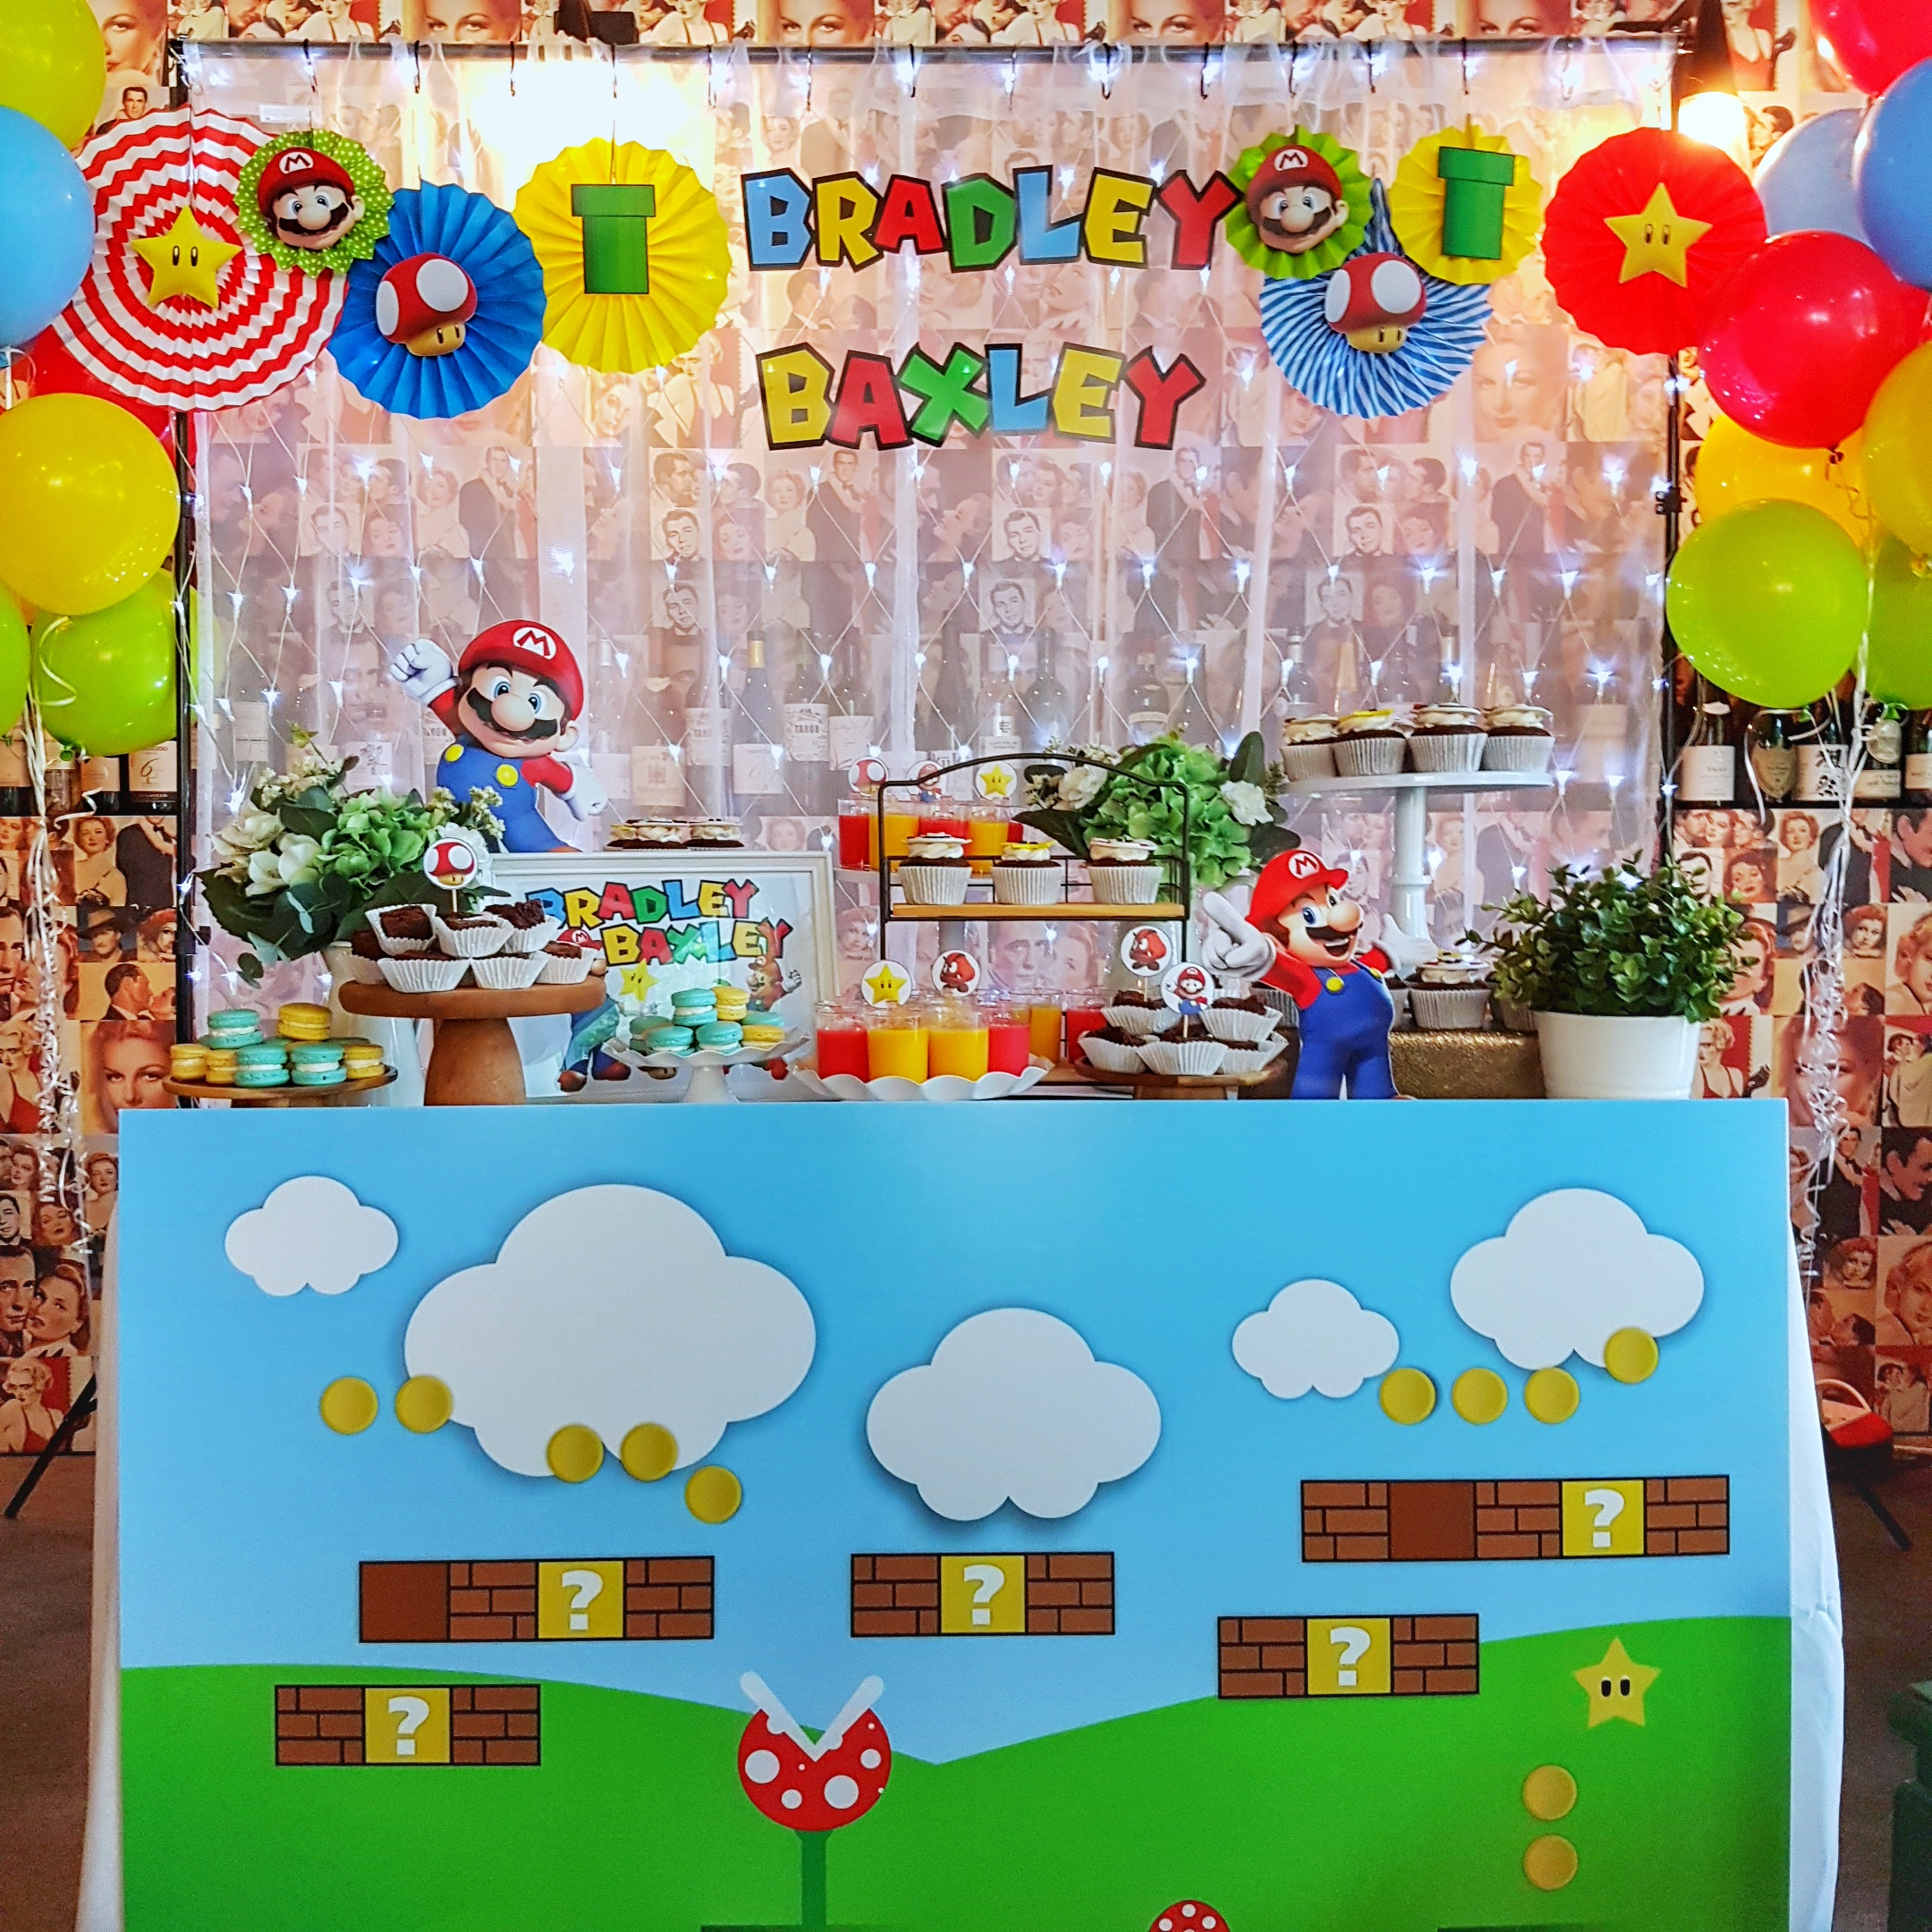 Mario dessert table by The Baking Experiment